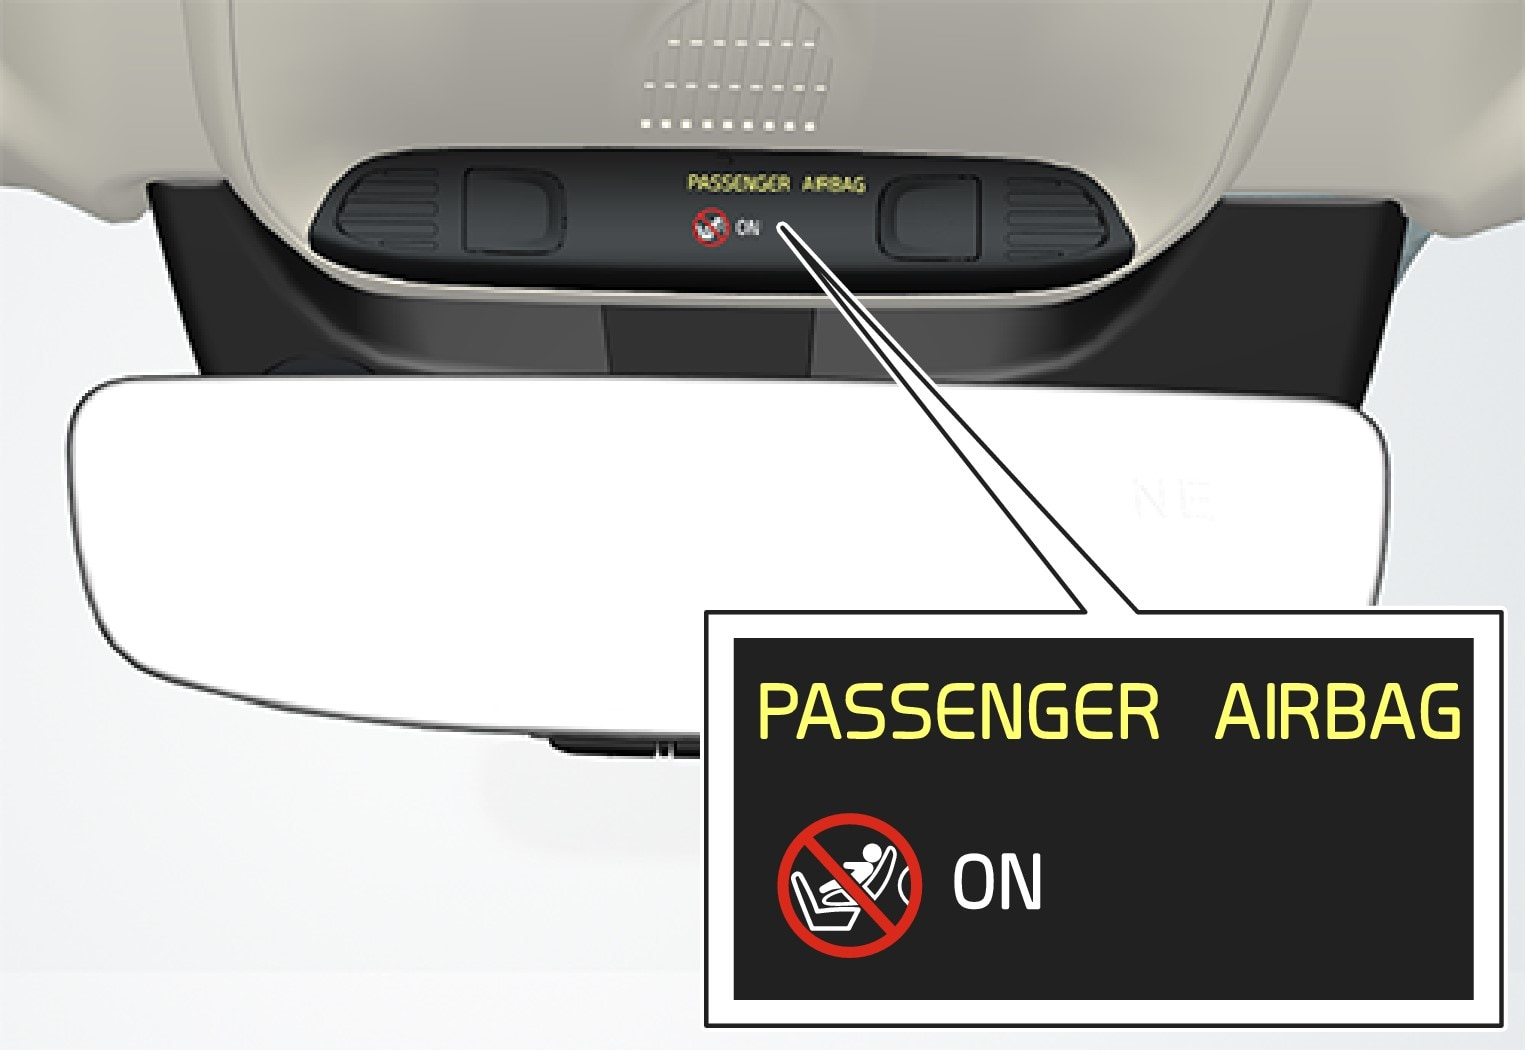 P5-1507–Safety–Overhead console passenger airbag on